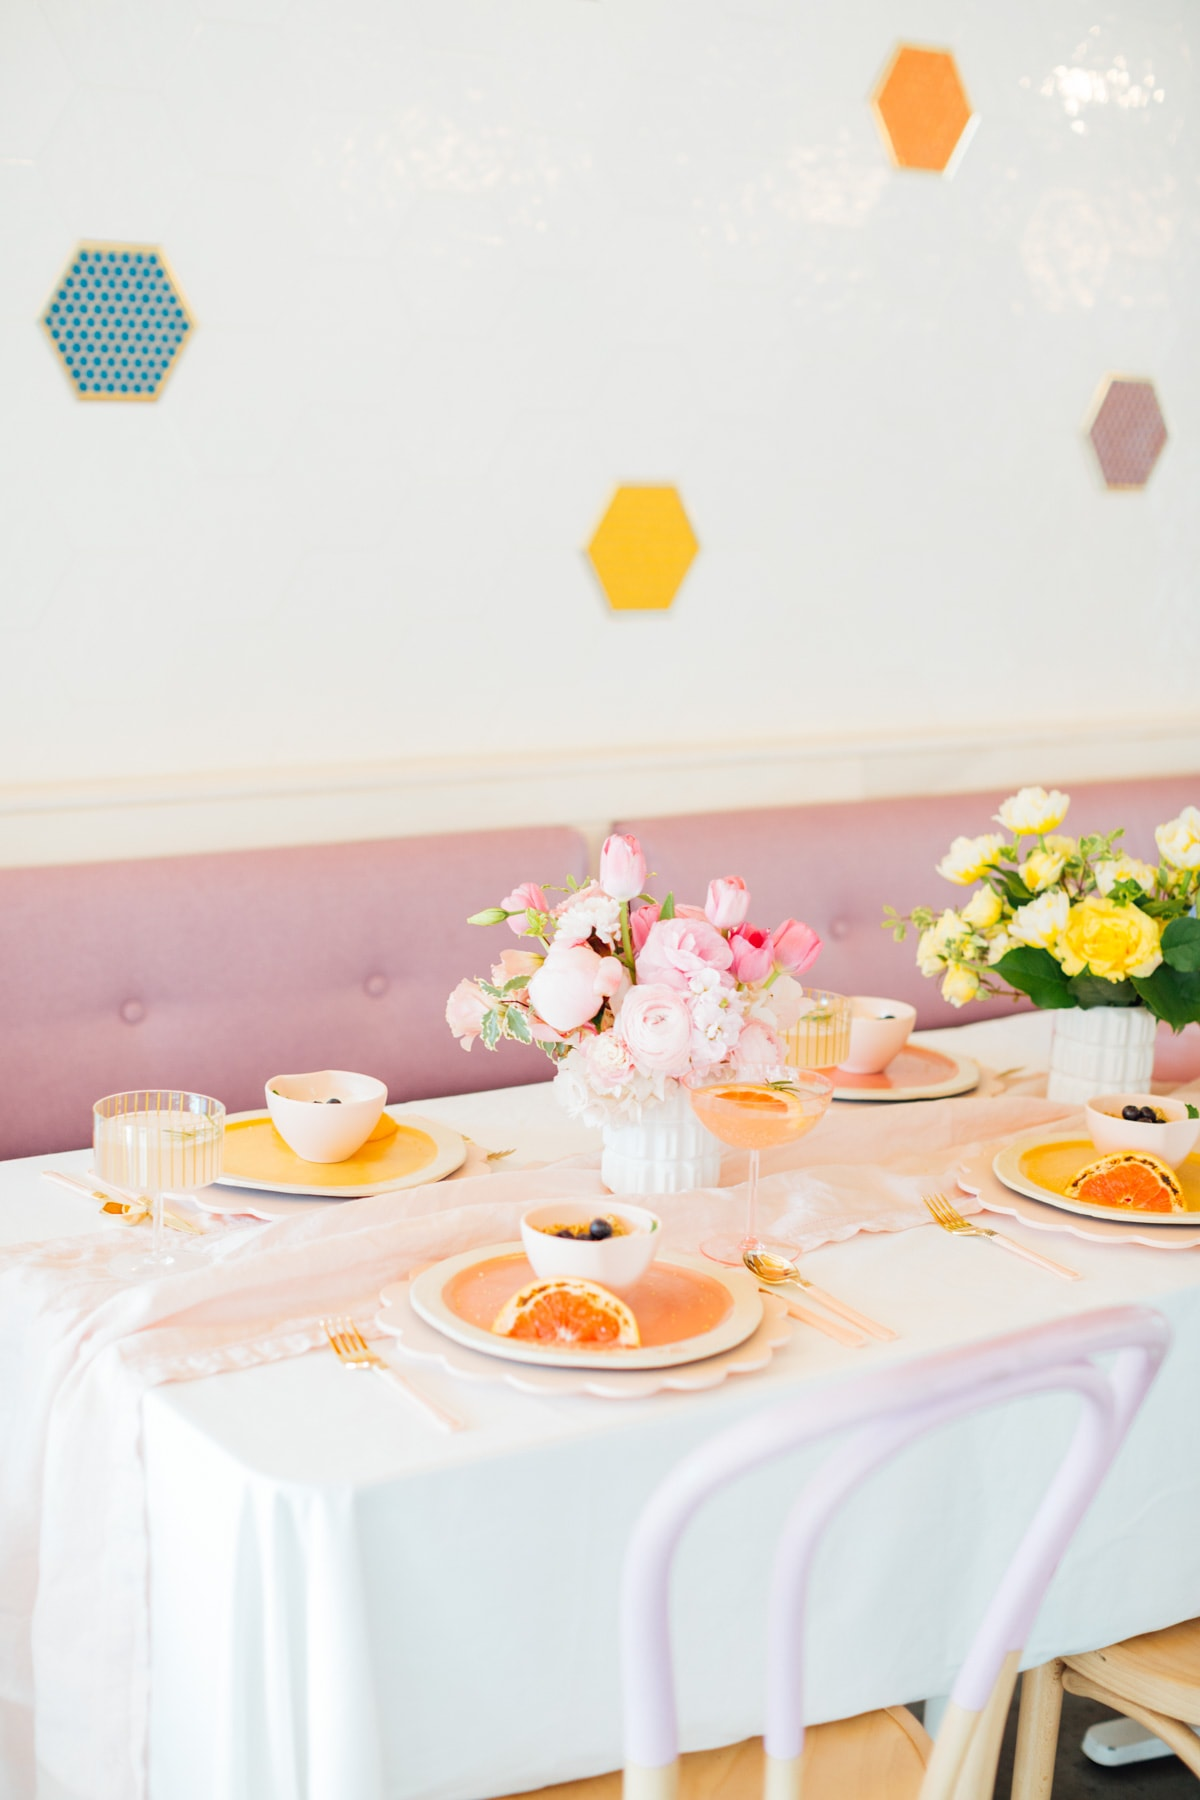 brunch inspiration! A Perfectly Pastel Easter Table Idea by top Houston lifestyle blogger Ashley Rose of Sugar & Cloth #diy #tablescape #ideas #easter #pastel #party #decorations #brunch #bridalshower #bridal #shower #baby